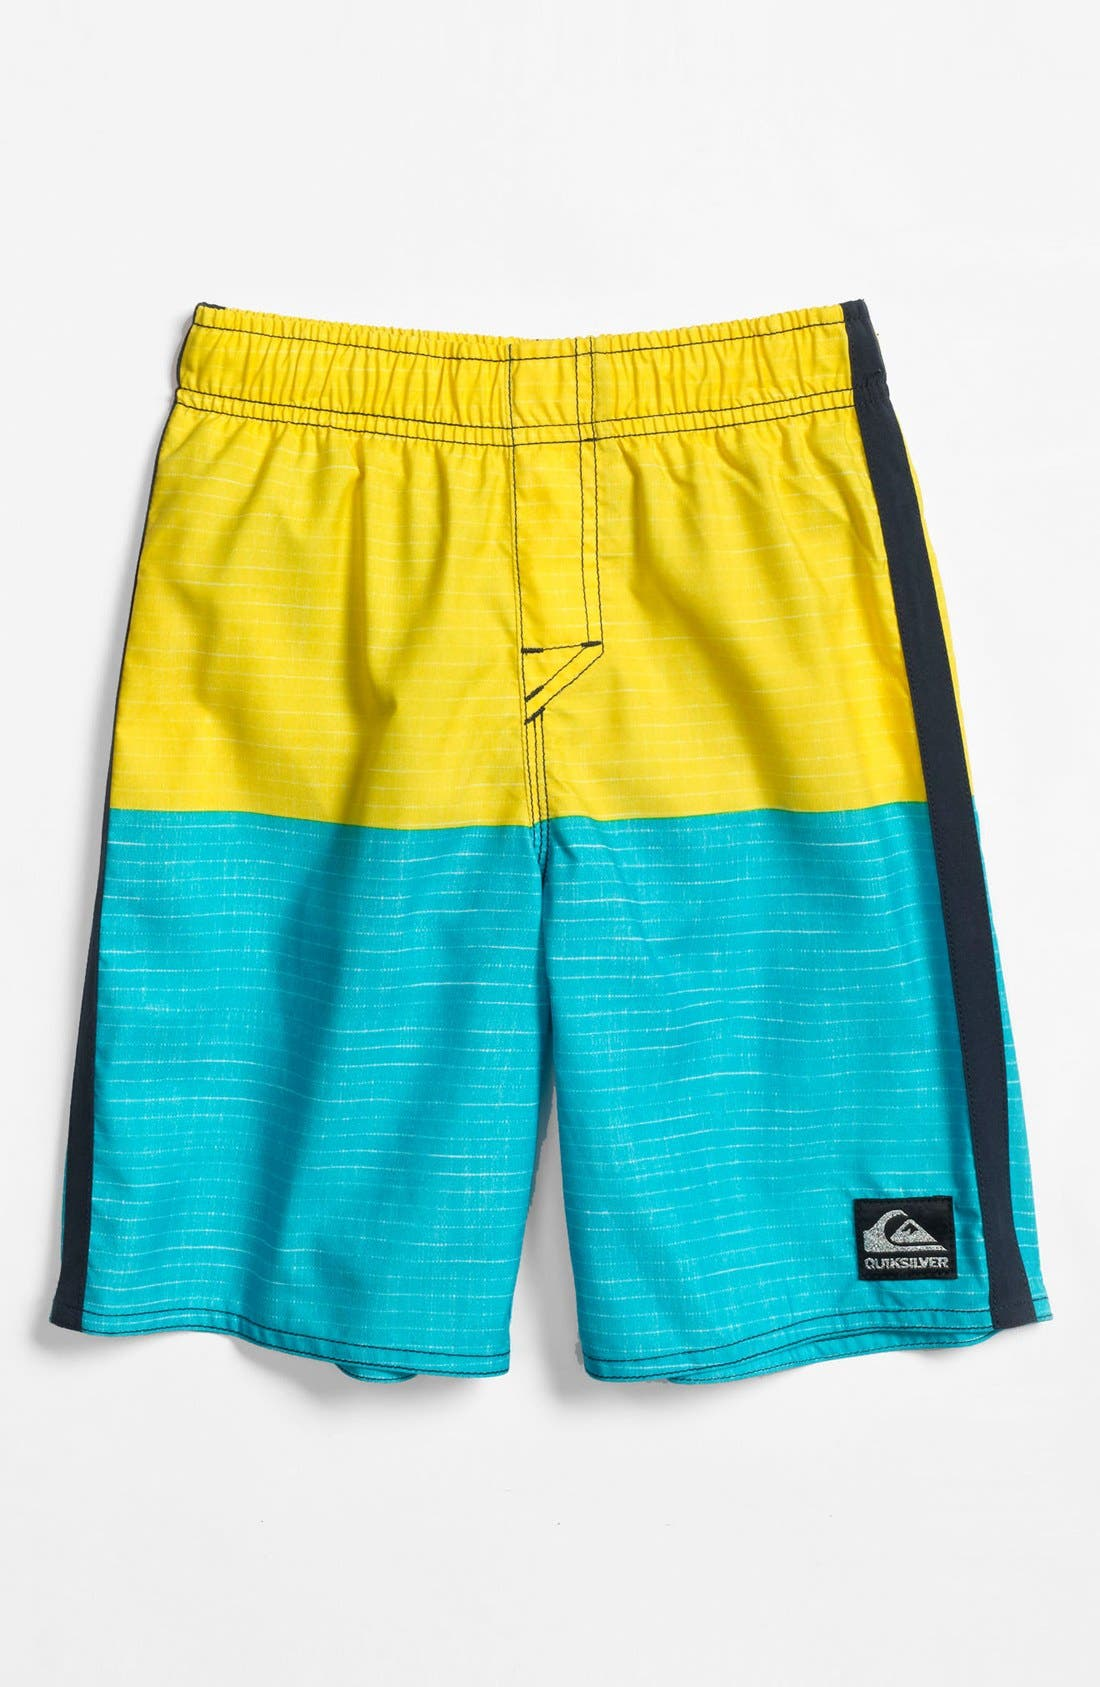 Alternate Image 1 Selected - Quiksilver 'Magic Fish Water Change' Volley Shorts (Little Boys)